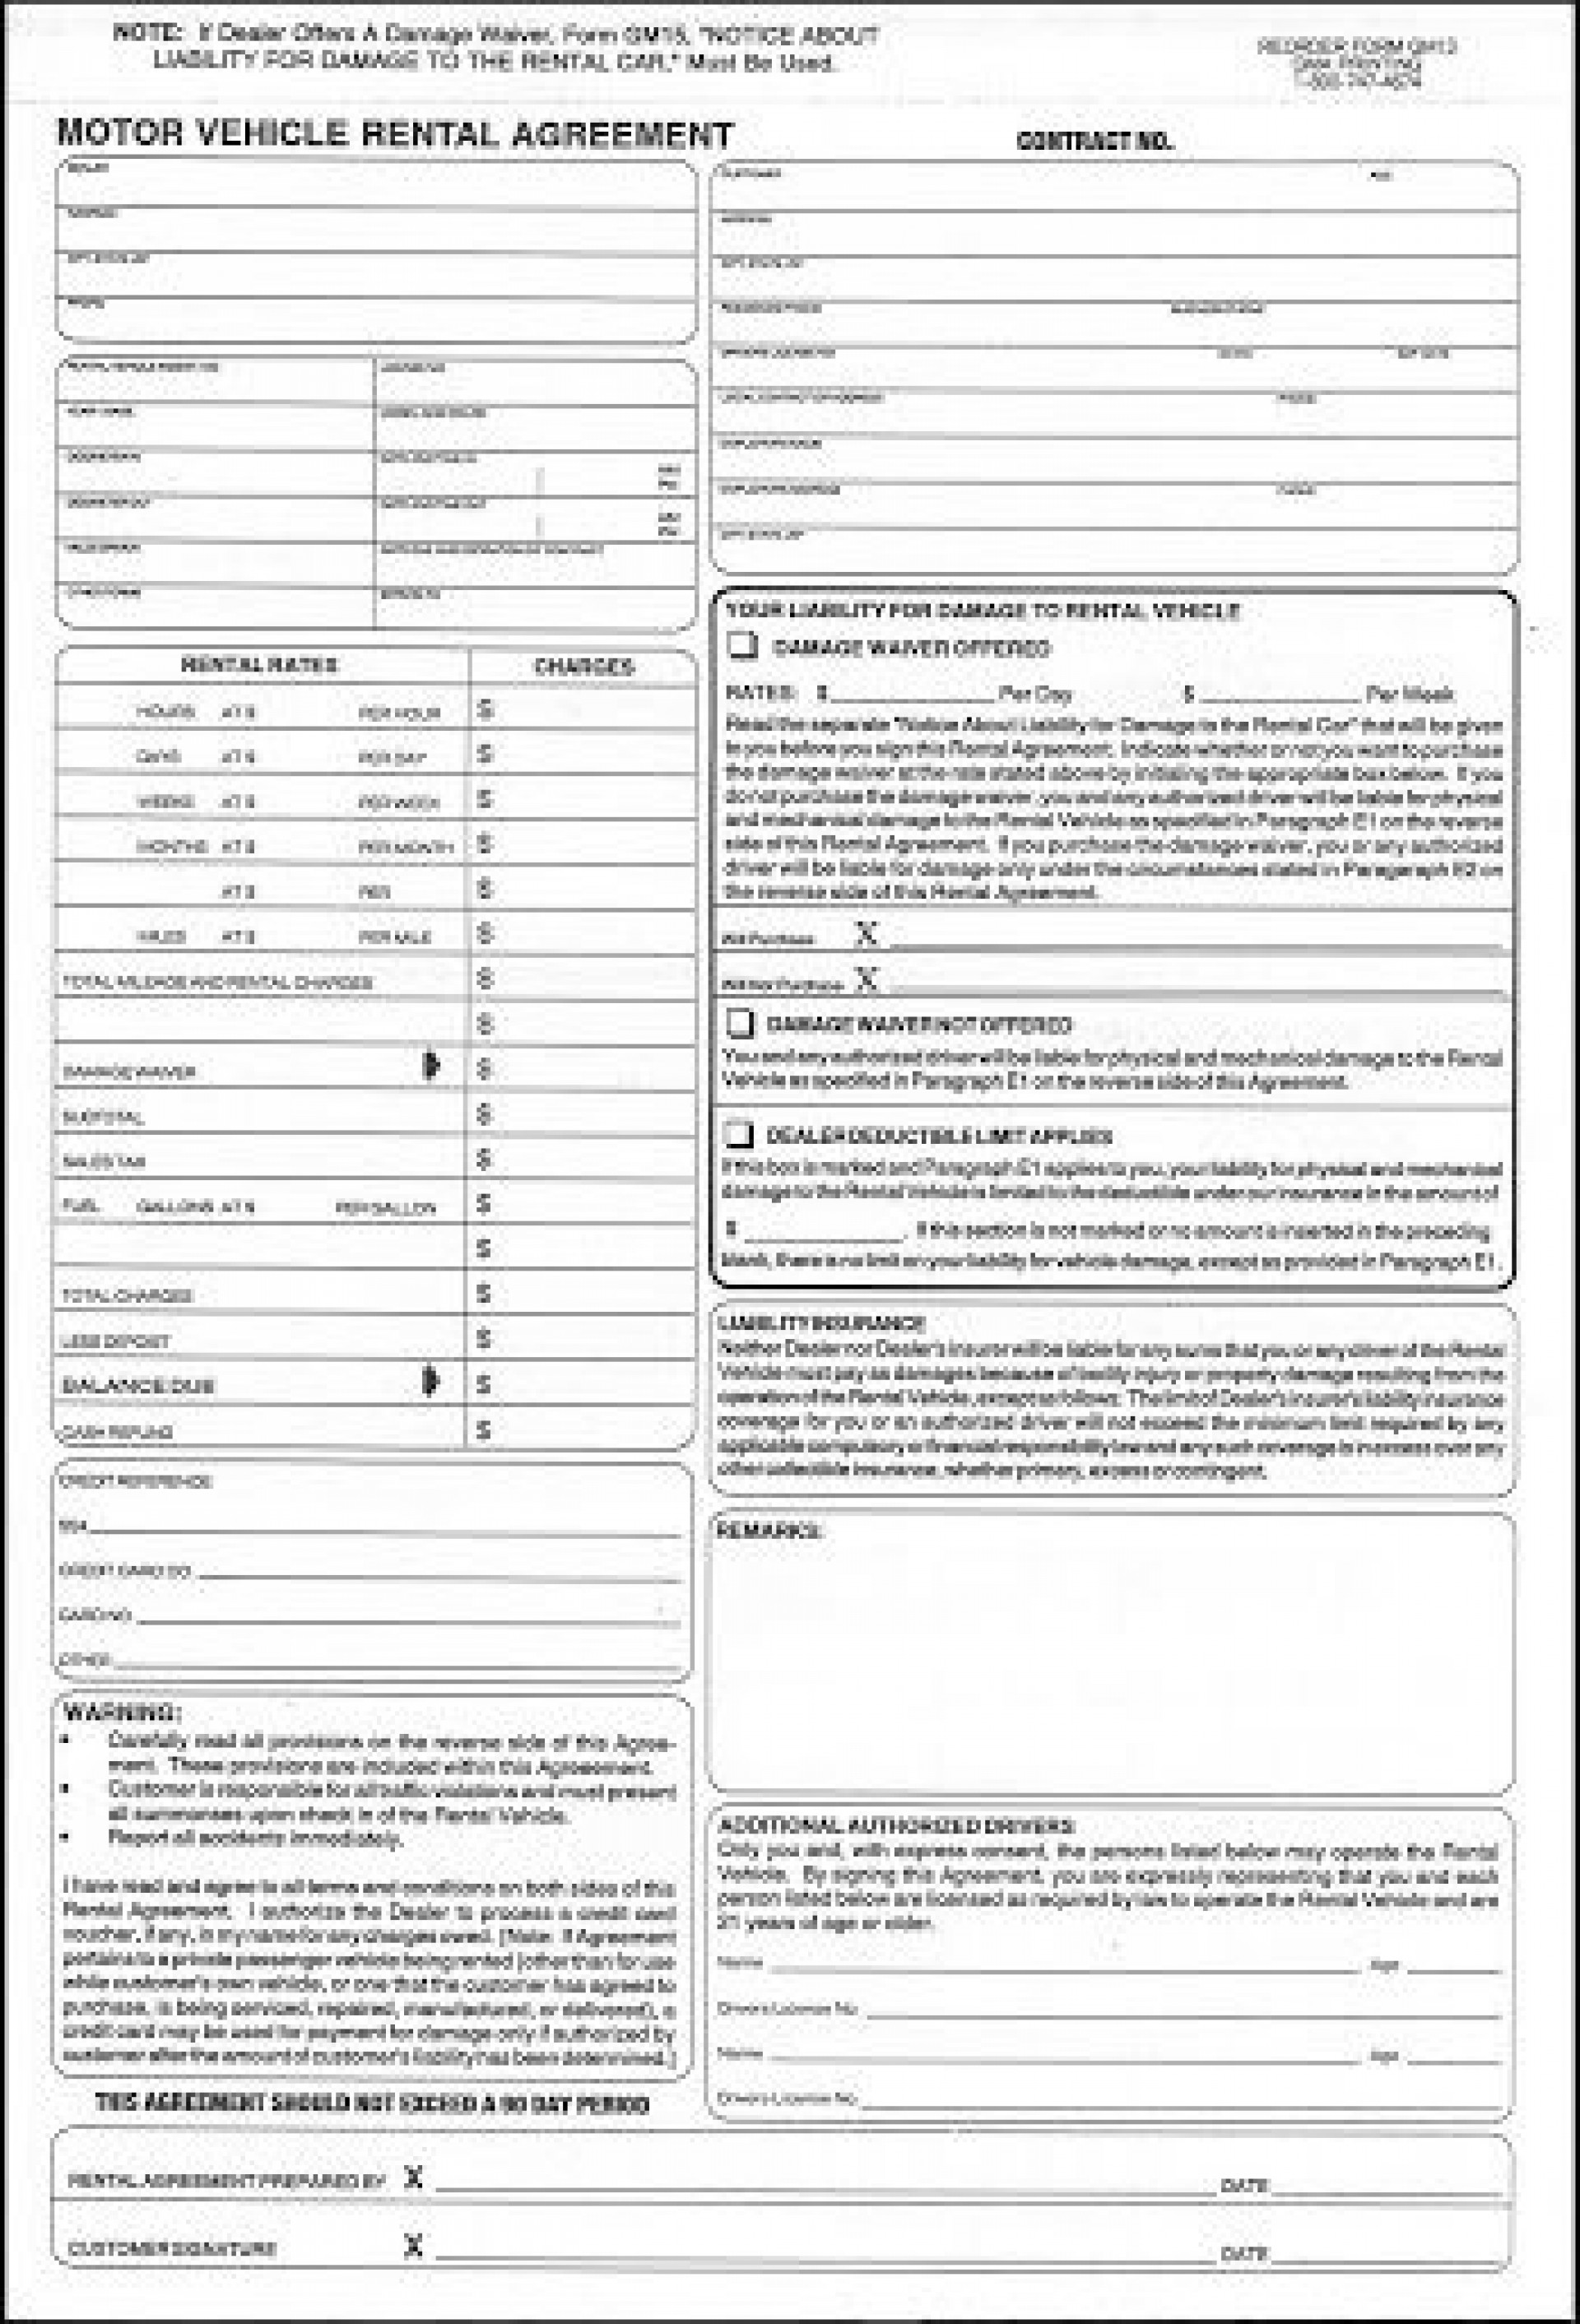 015 Awful Car Rental Agreement Template High Definition  Vehicle Rent To Own South Africa Singapore1920